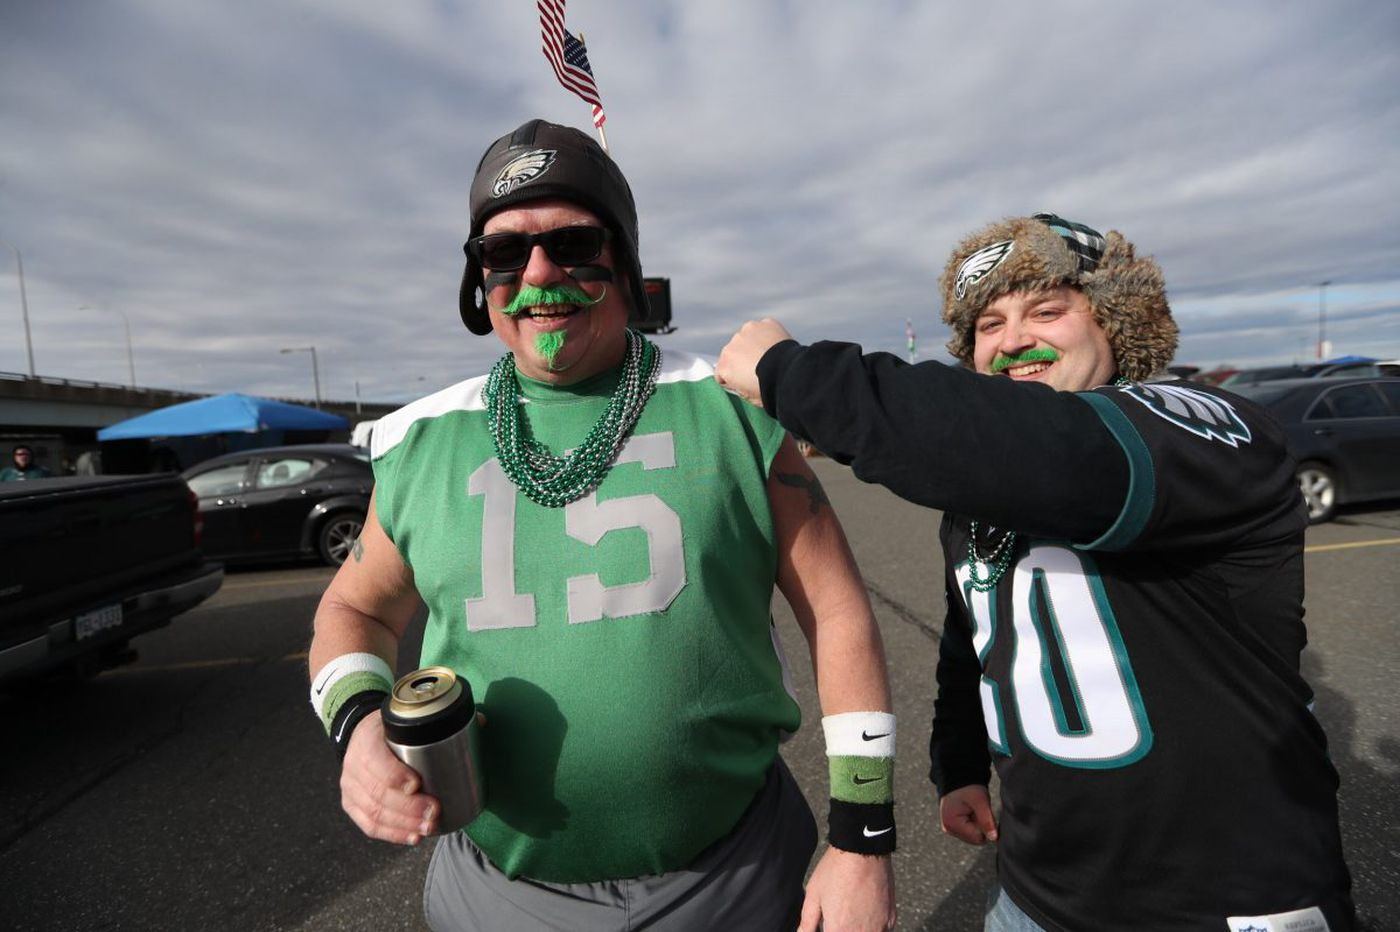 Eagles fans greet playoff day with tailgating gusto: 'It's so much bigger than the Eagles.'